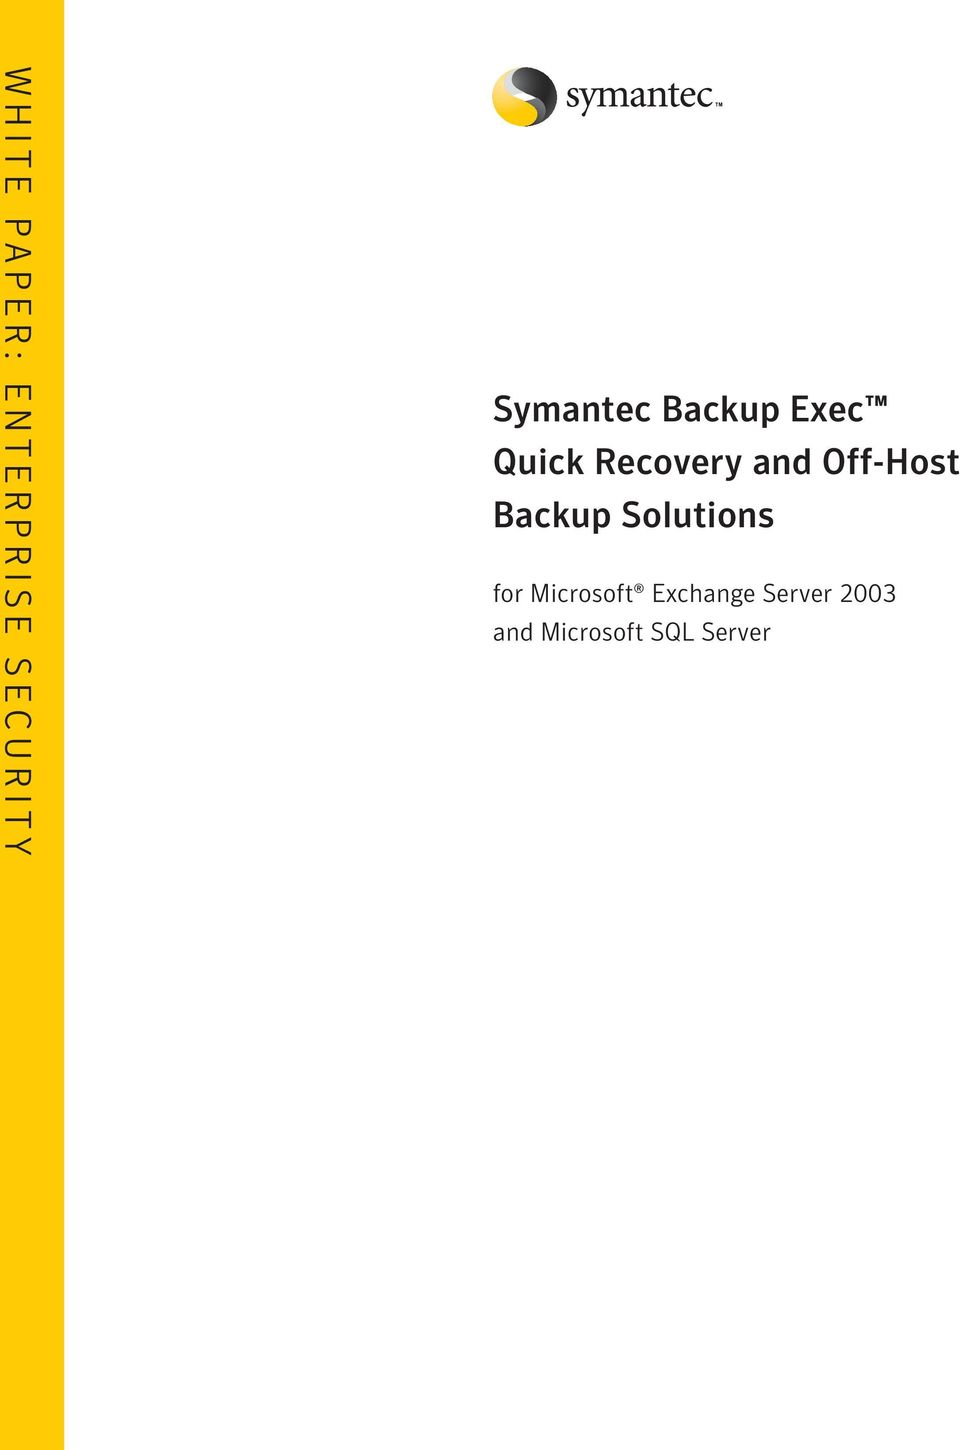 Off-Host Backup Solutions for Microsoft